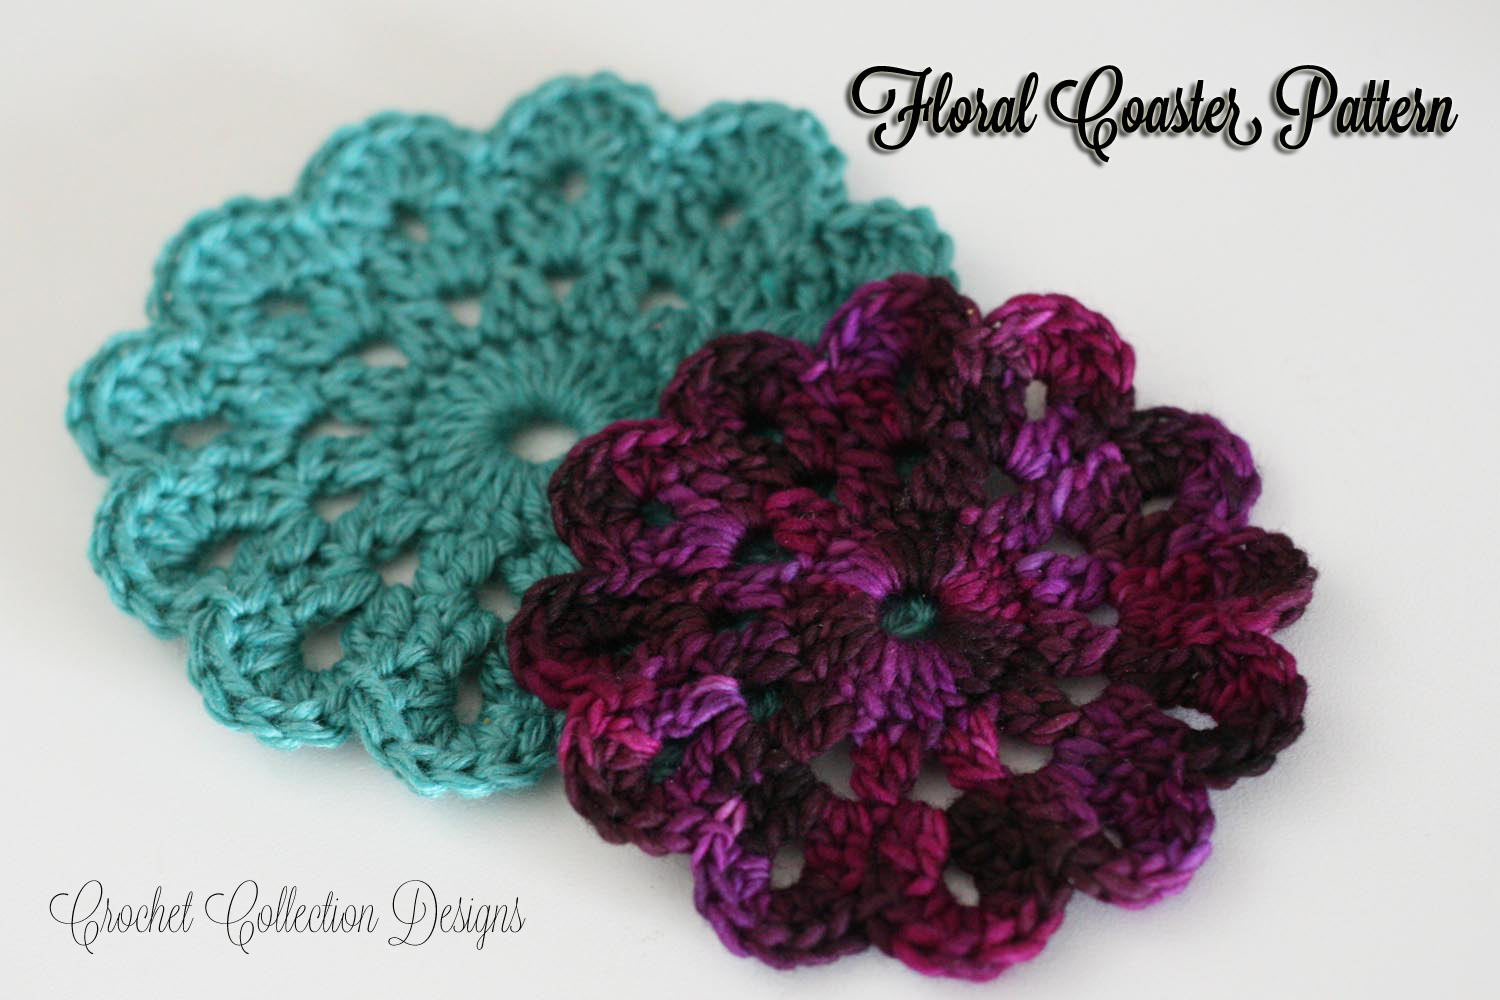 Free Crochet Patterns Of Coasters : Floral Coaster Pattern ~ Crochet Collection